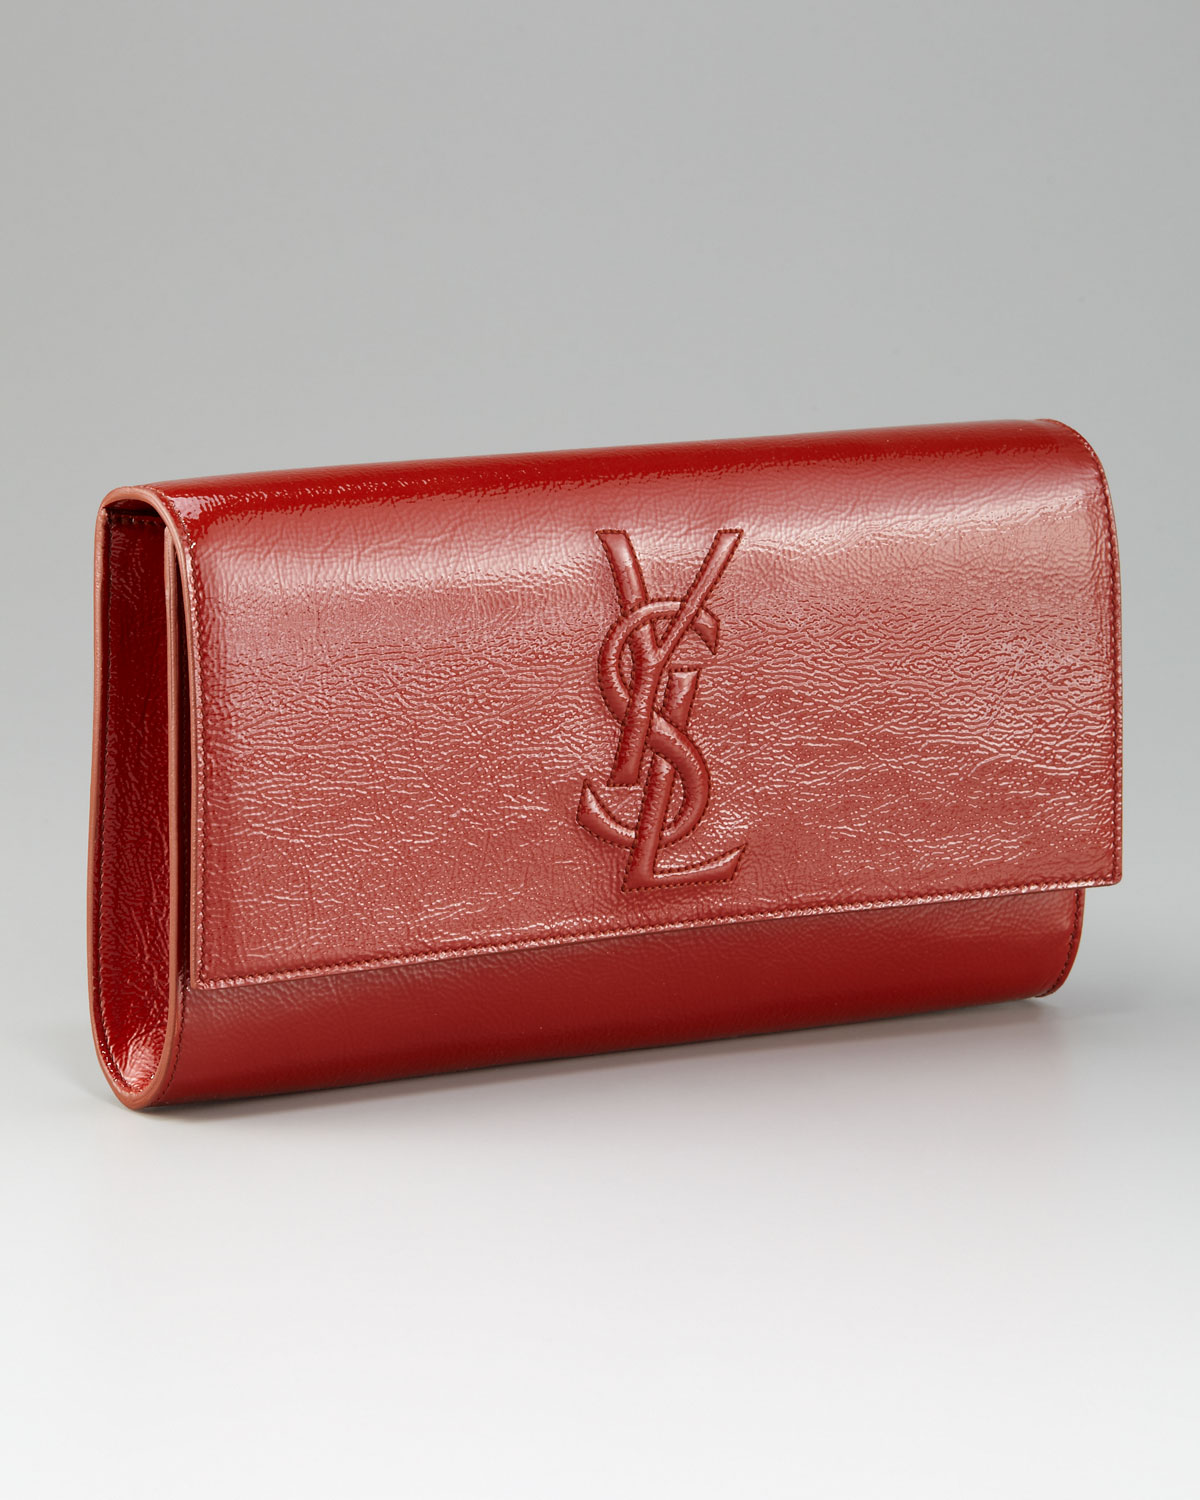 d8642a511bf $900 Yves Saint Laurent YSL Belle Du Jour Red Patent Leather Clutch ...